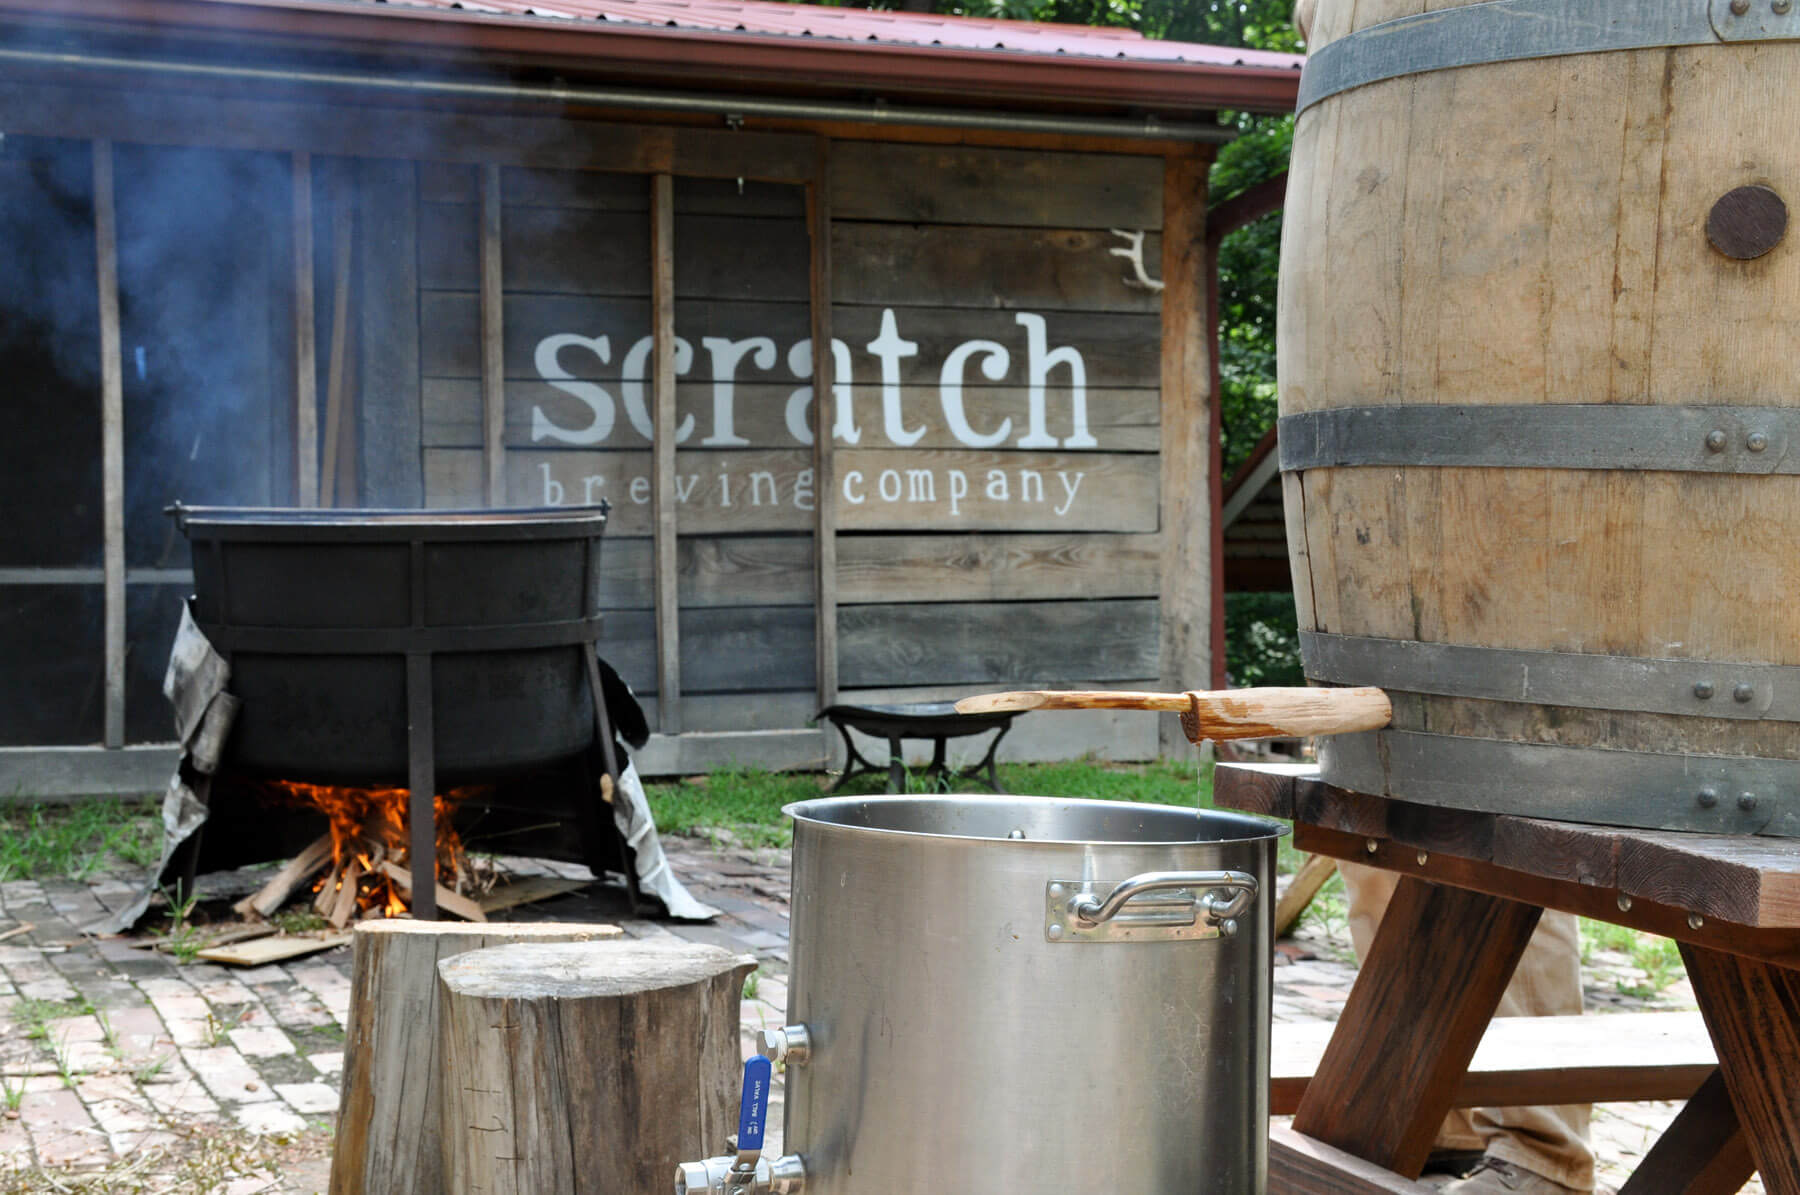 Варка грюйта на Scratch Brewing Company